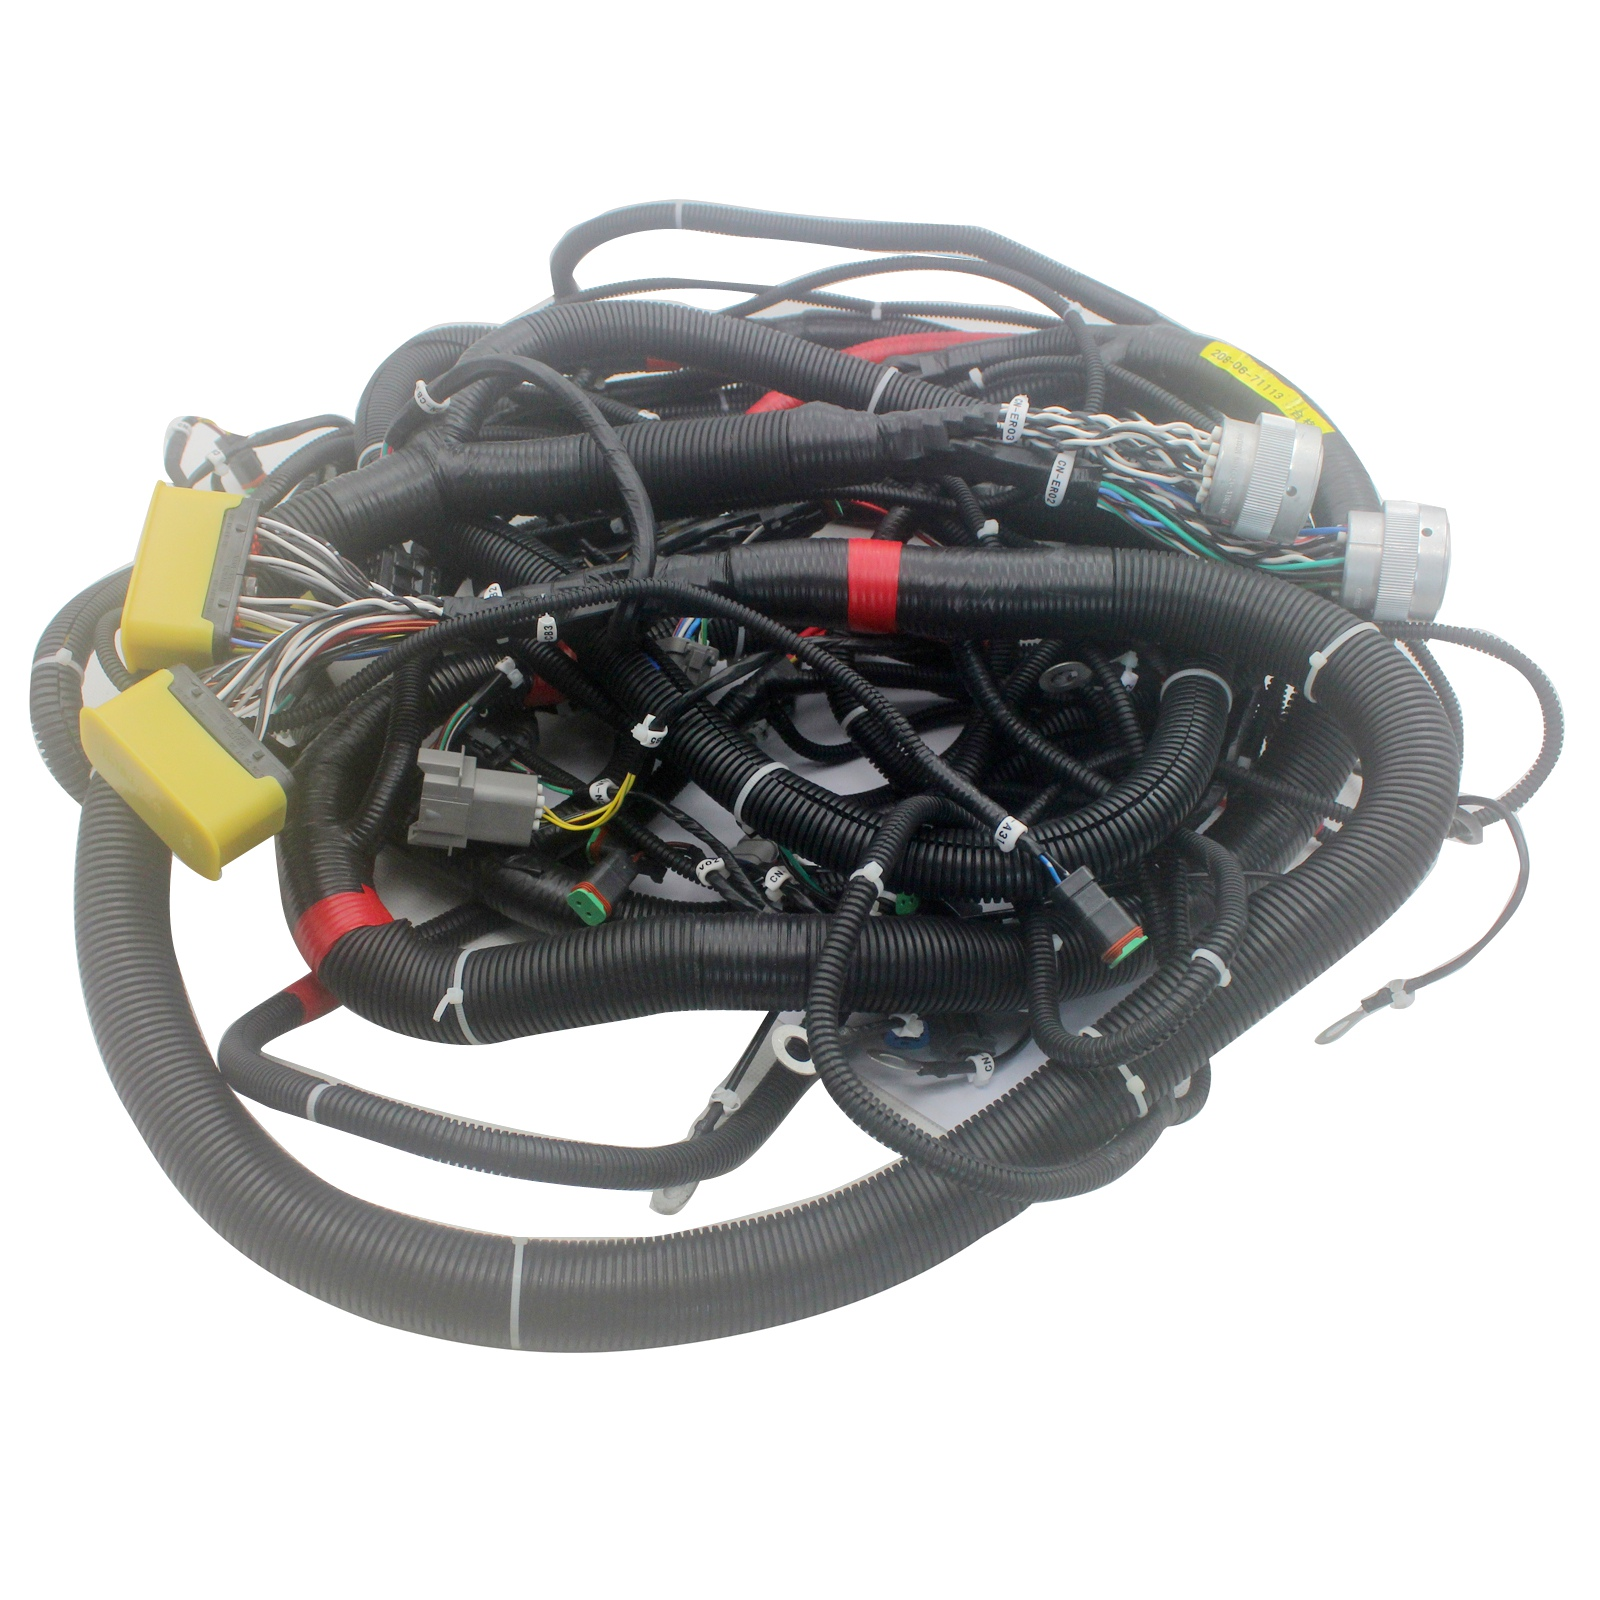 hight resolution of details about pc400 7 450 7 main wiring harness 208 06 71113 71112 for komatsu excavator cable